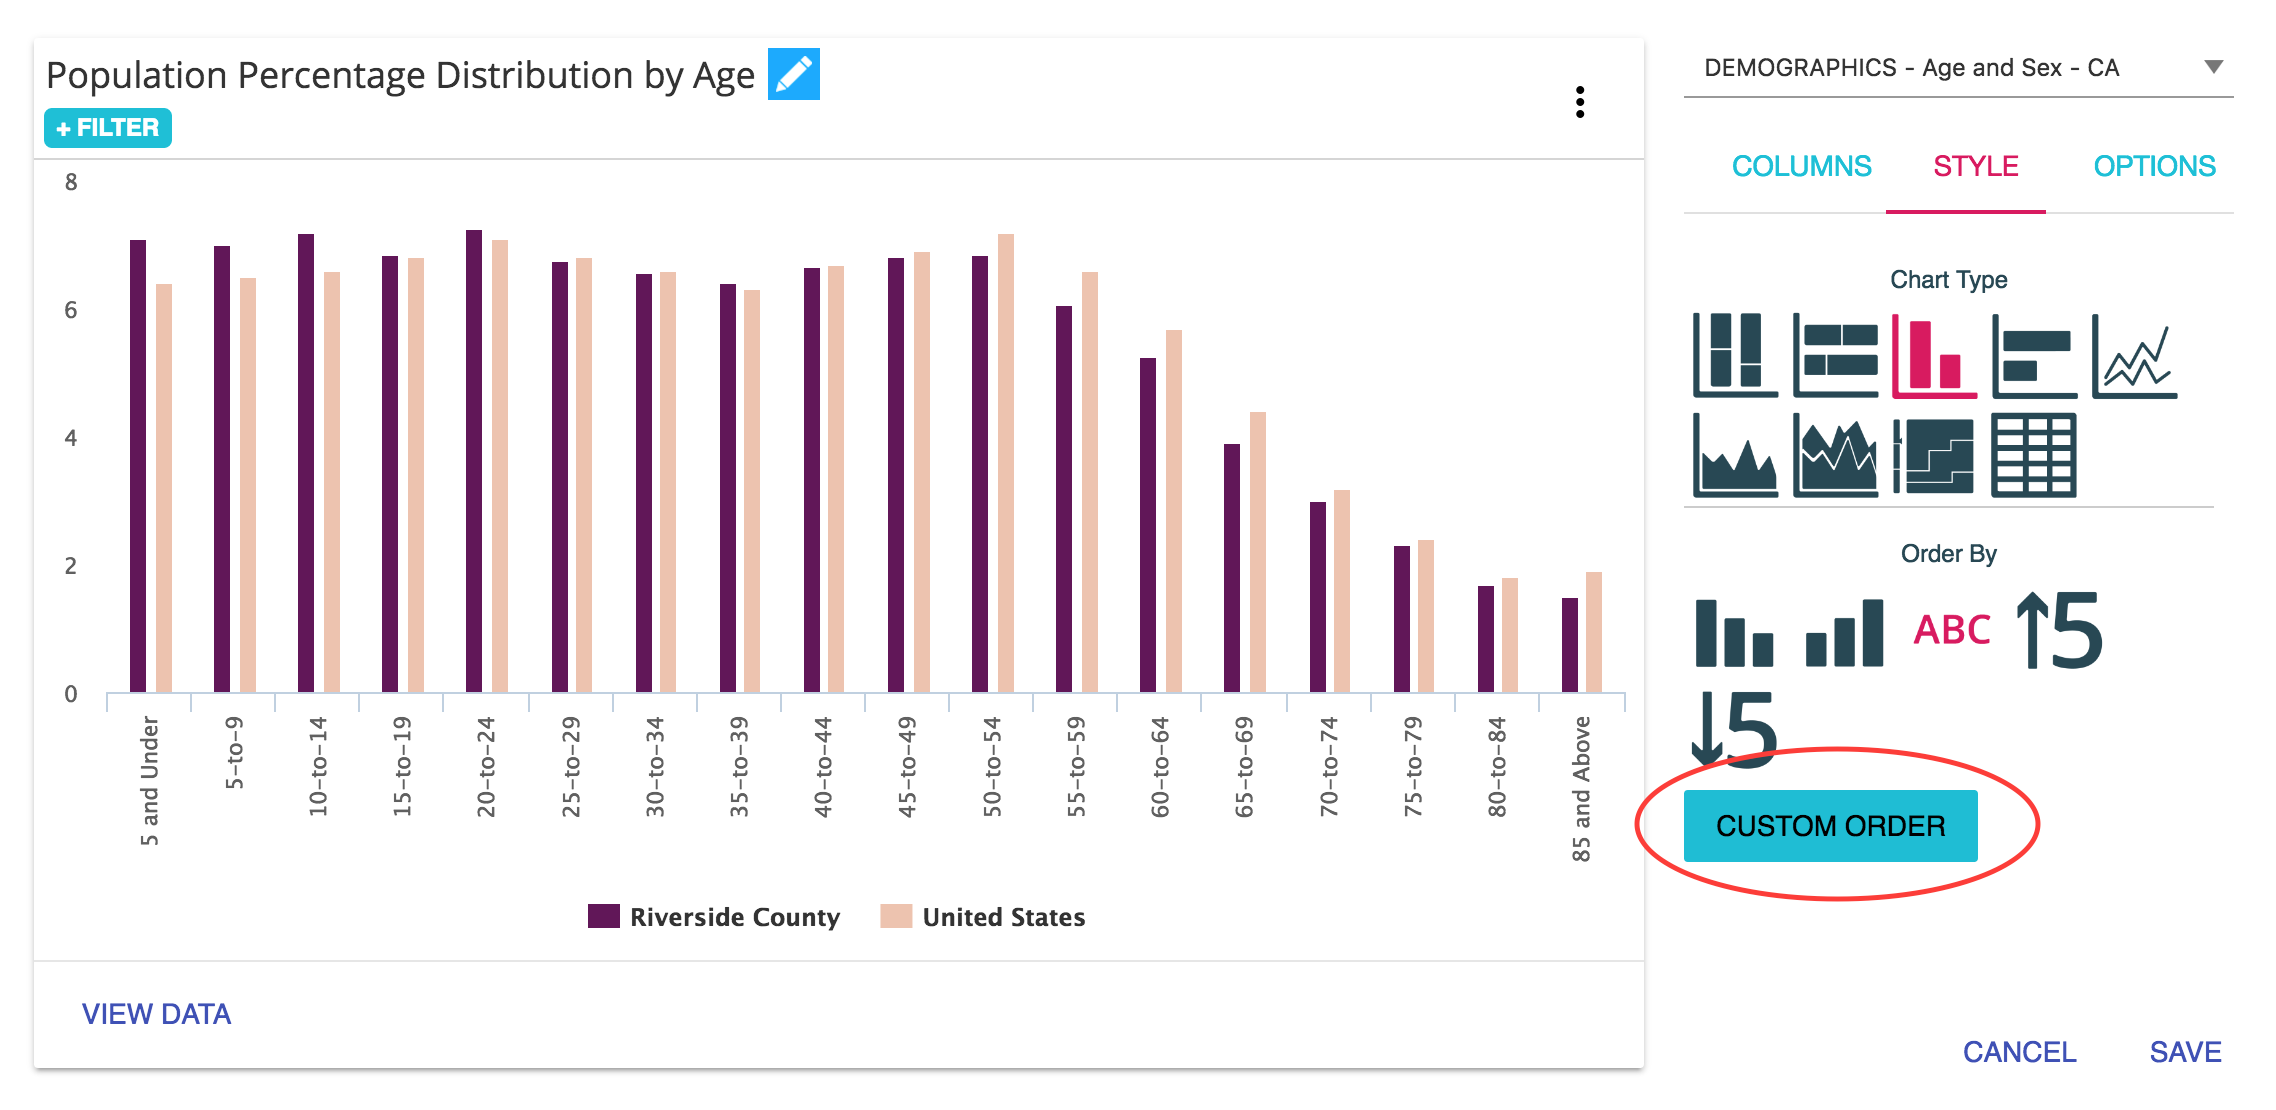 Custom order lets you arrange the elements on a chart—like the demographic age ranges shown here—in any order you'd like.